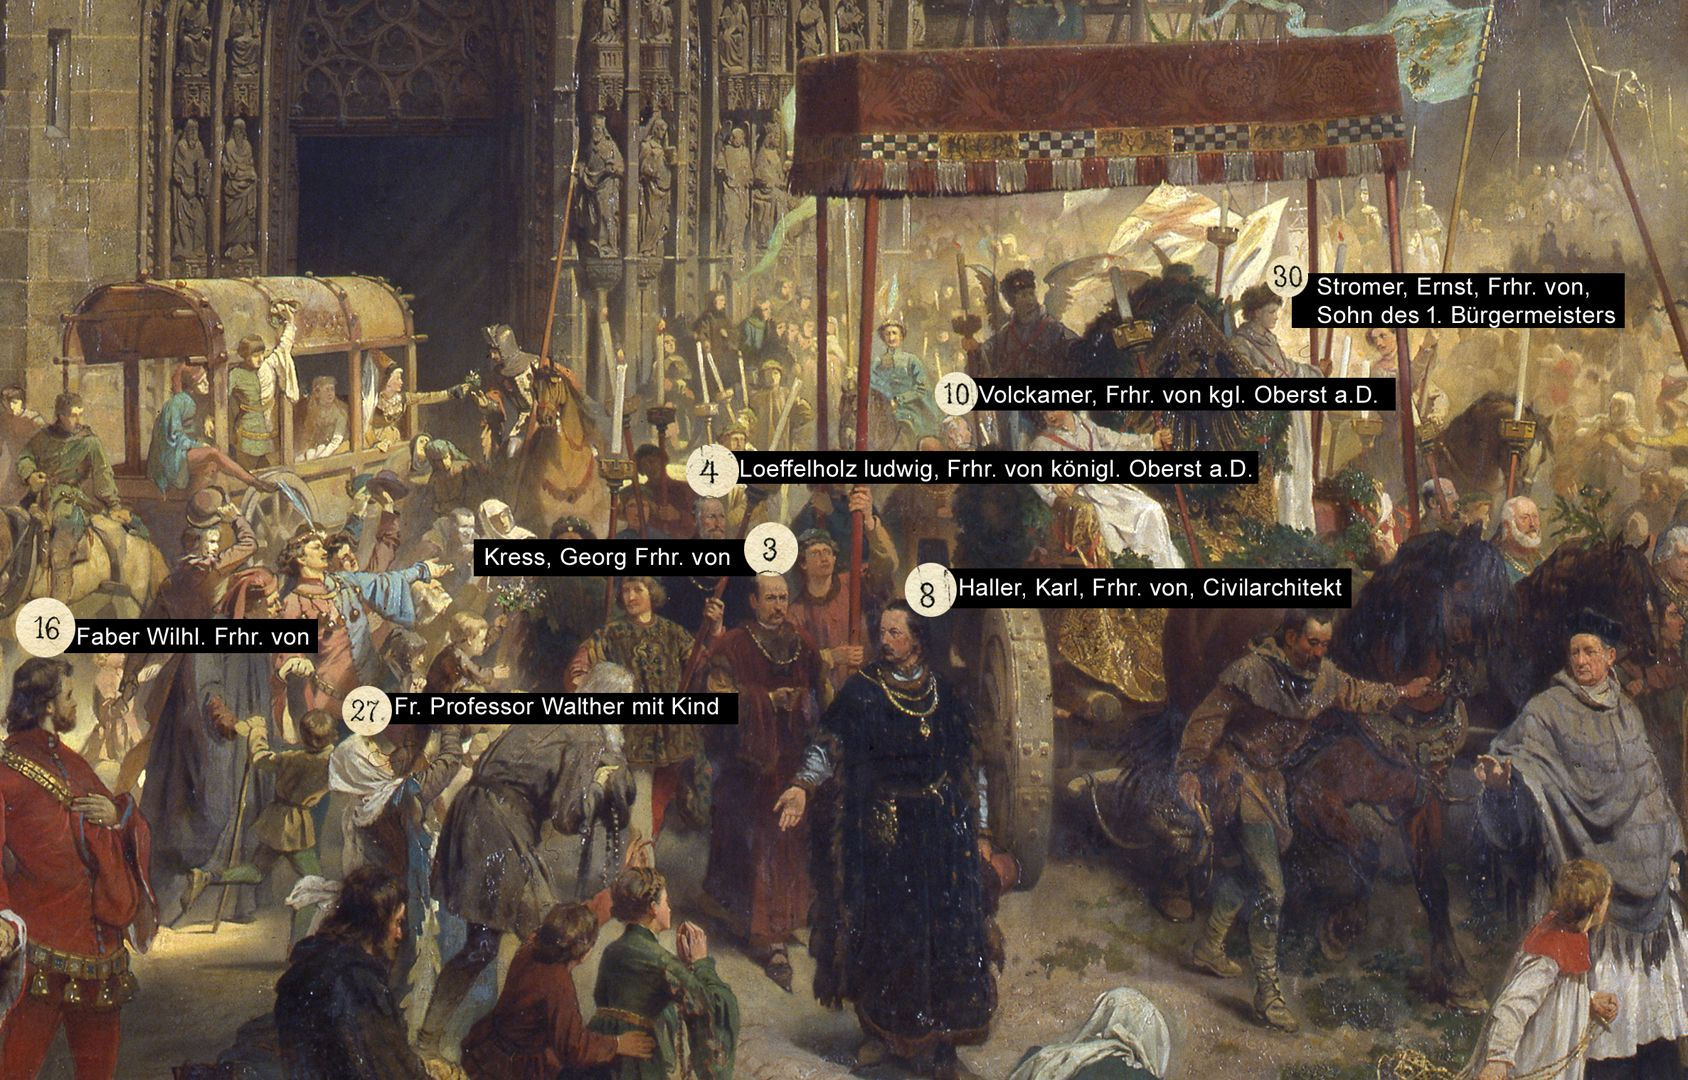 The transfer of the Imperial Regalia in Nuremberg on 22nd March 1424 Selection of persons depicted in the painting